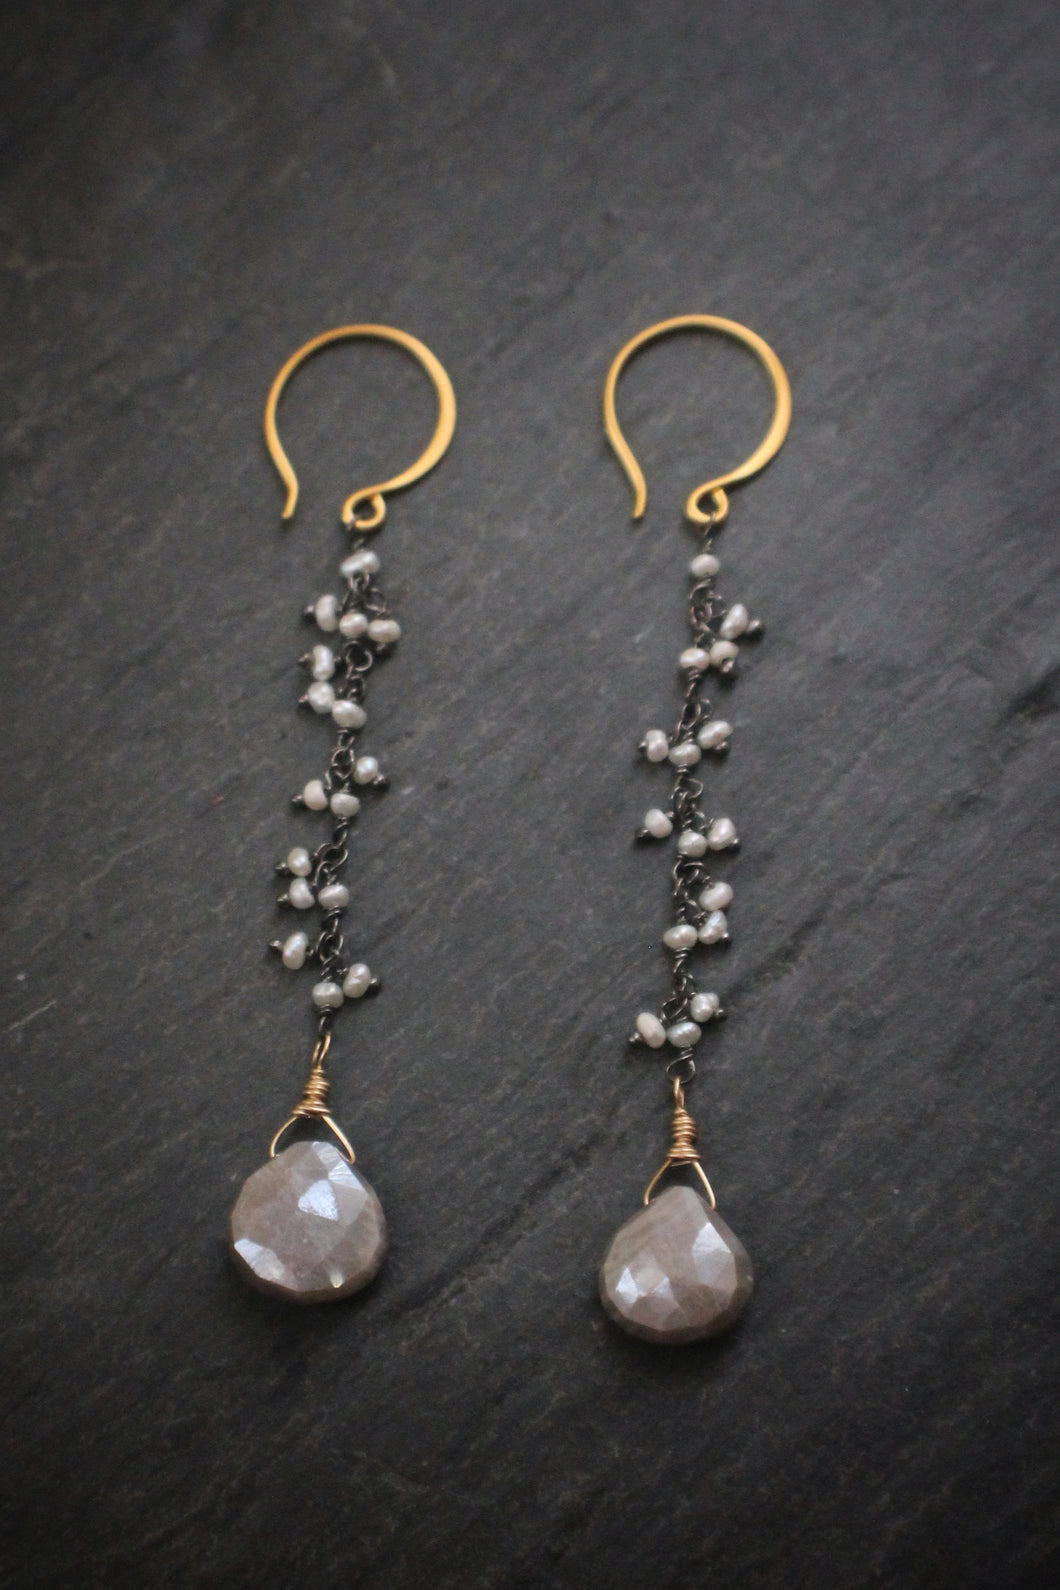 Sea and Stone Jewelry - Pearl fringe chain earrings in Vermeil with Moonstone teardrops